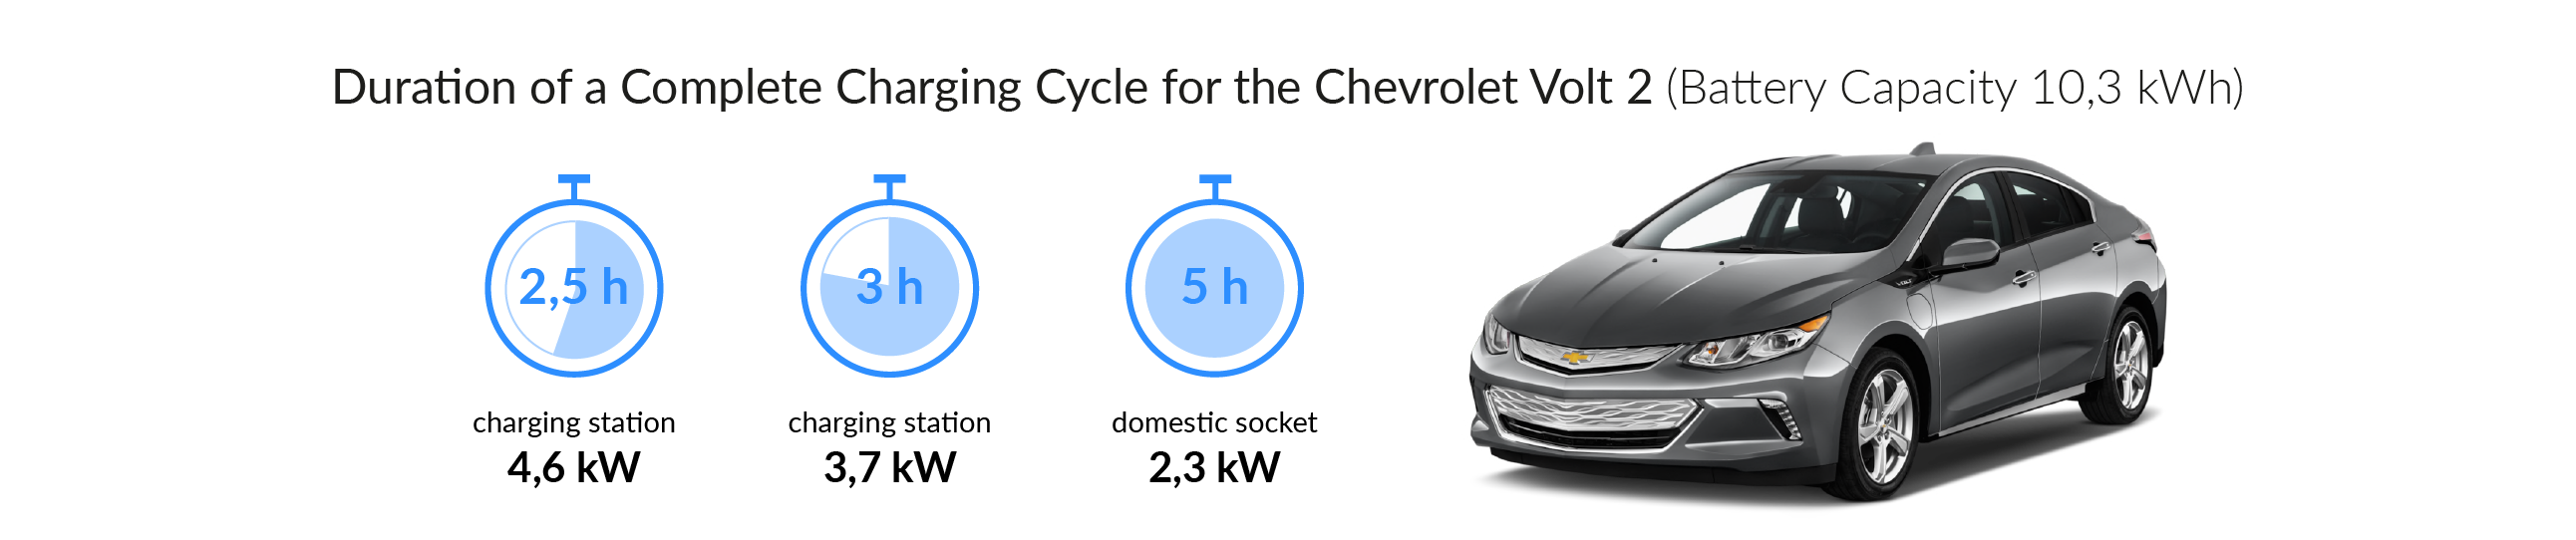 Charging time for your Chevrolet Volt 2